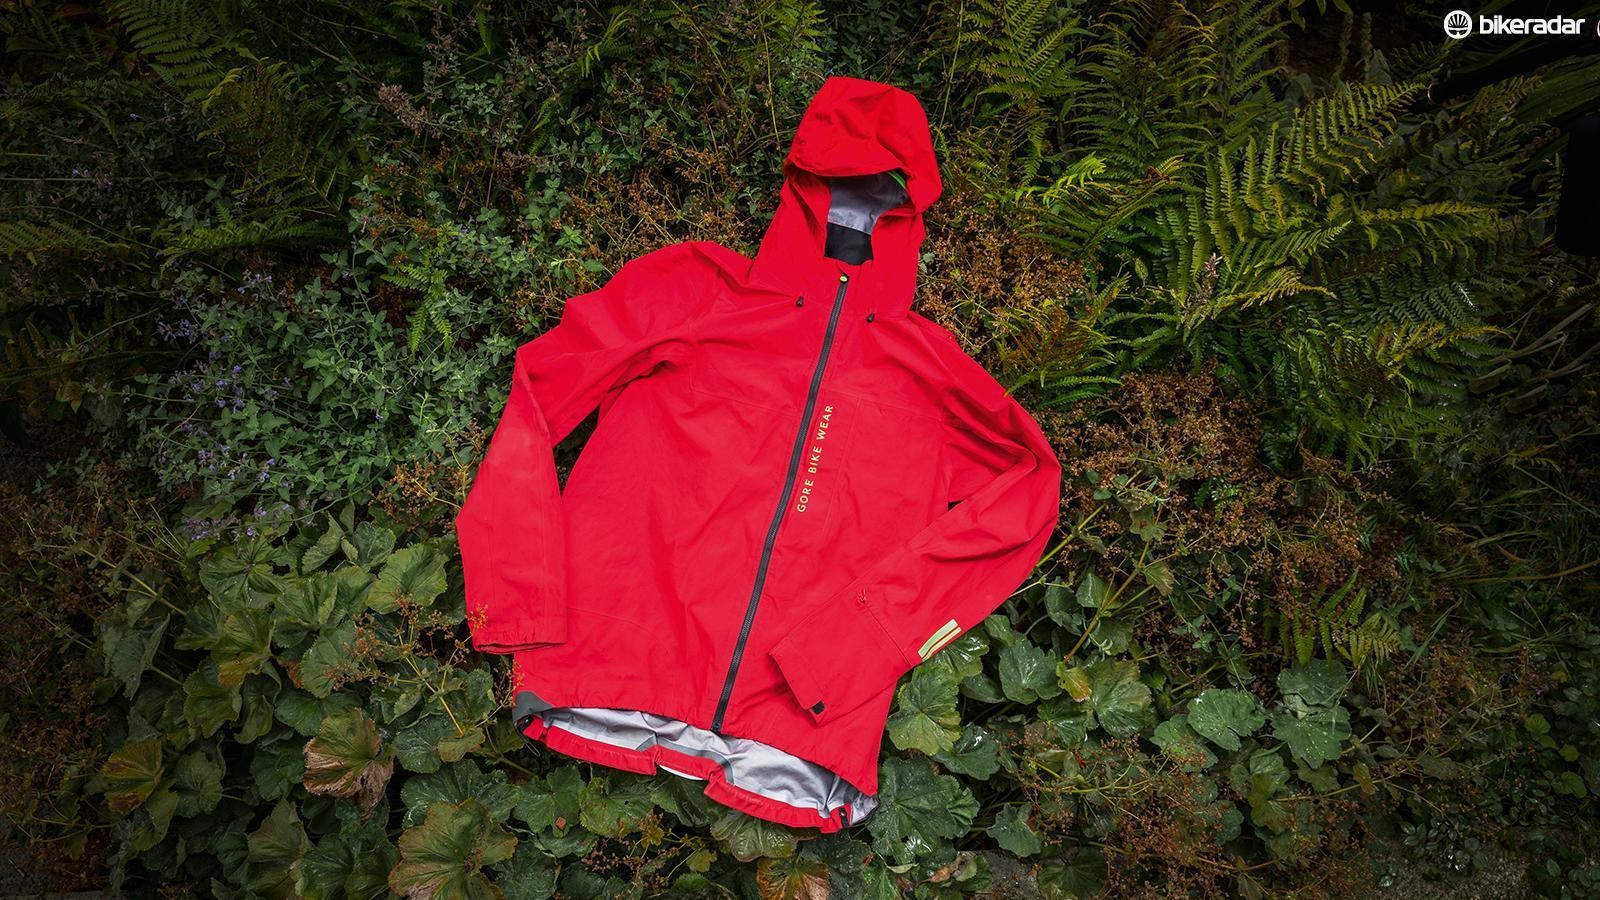 62133a4c6c9 Gore s Power Trail is the best mountain biking jacket money can buy